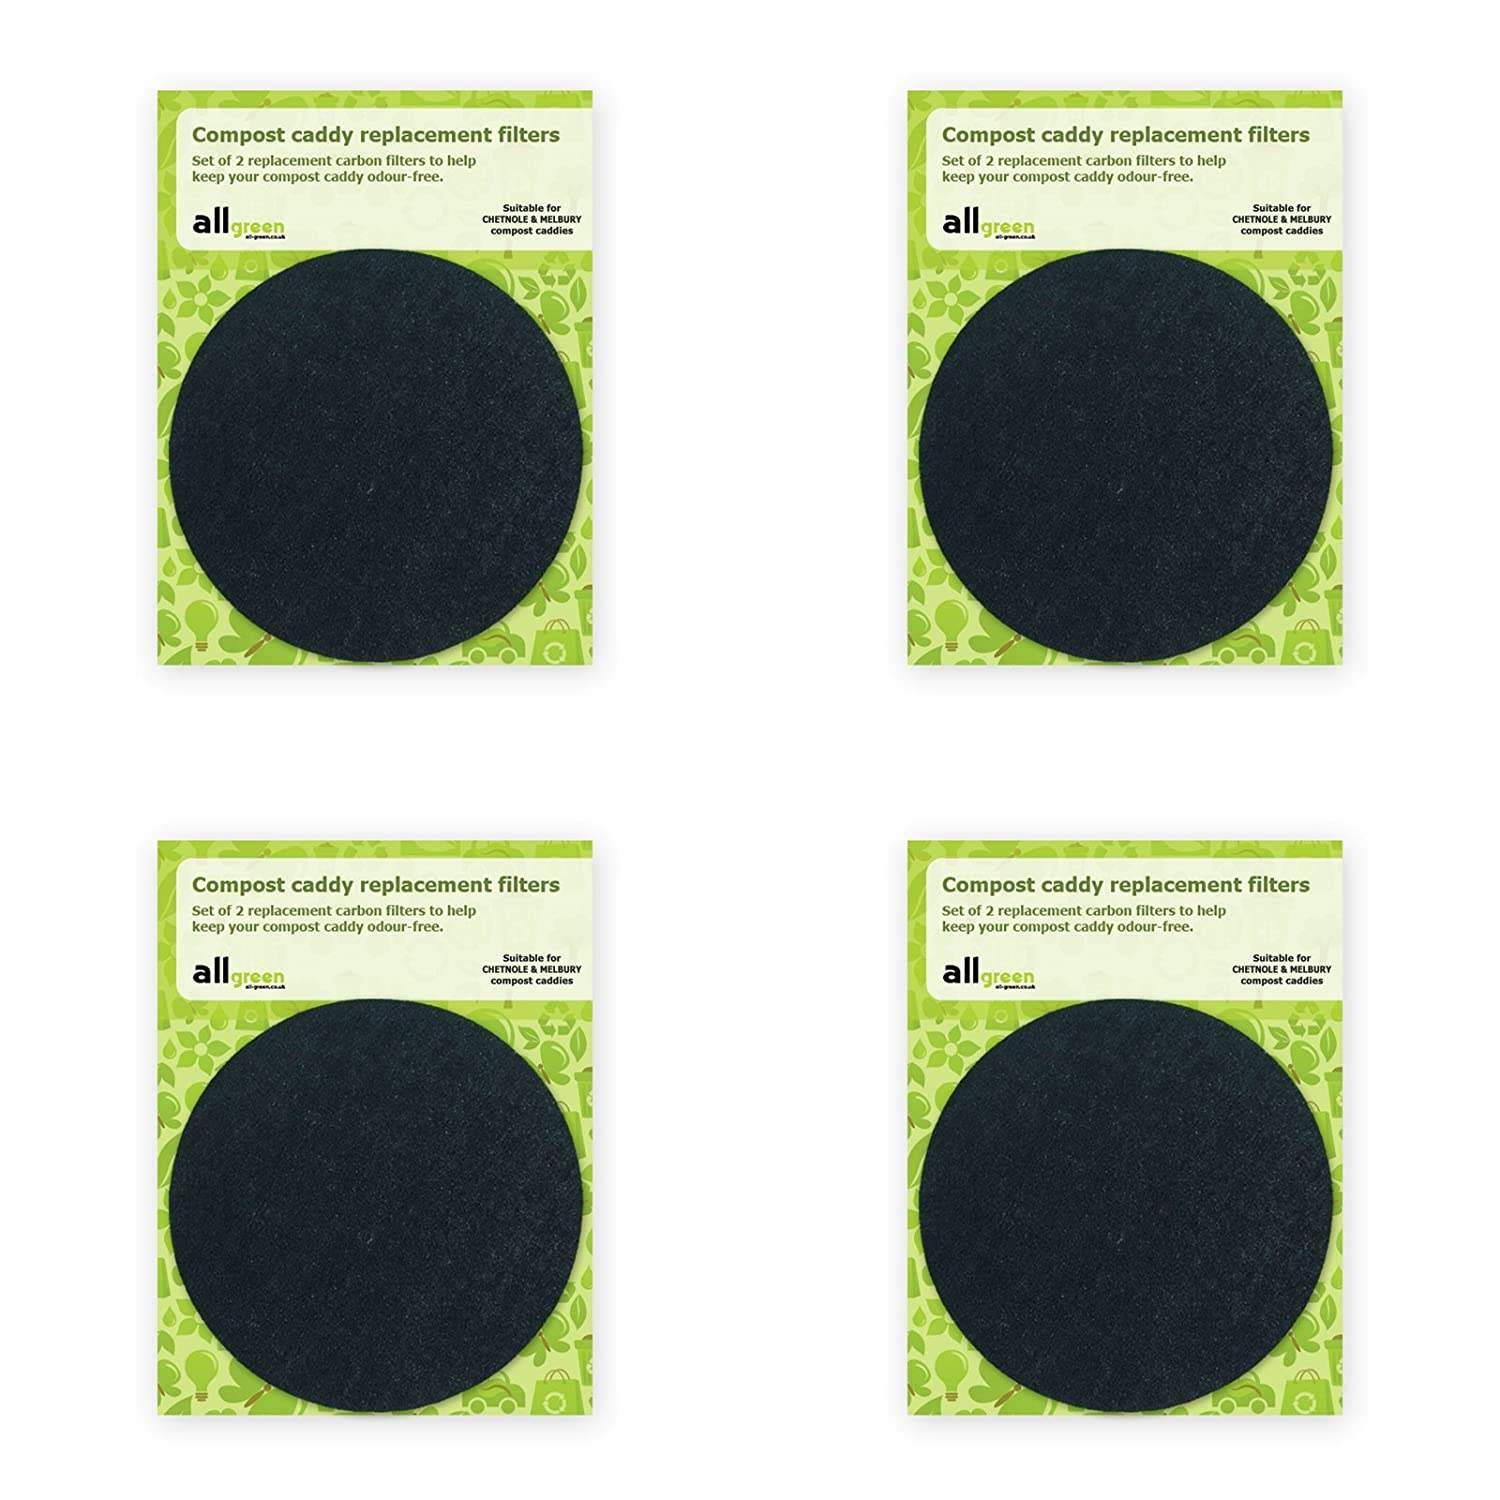 Compost Caddy Spare Filters - Suitable for the Chetnole & Melbury caddies - (4x 2pk - Total 8 filters) The Caddy Company